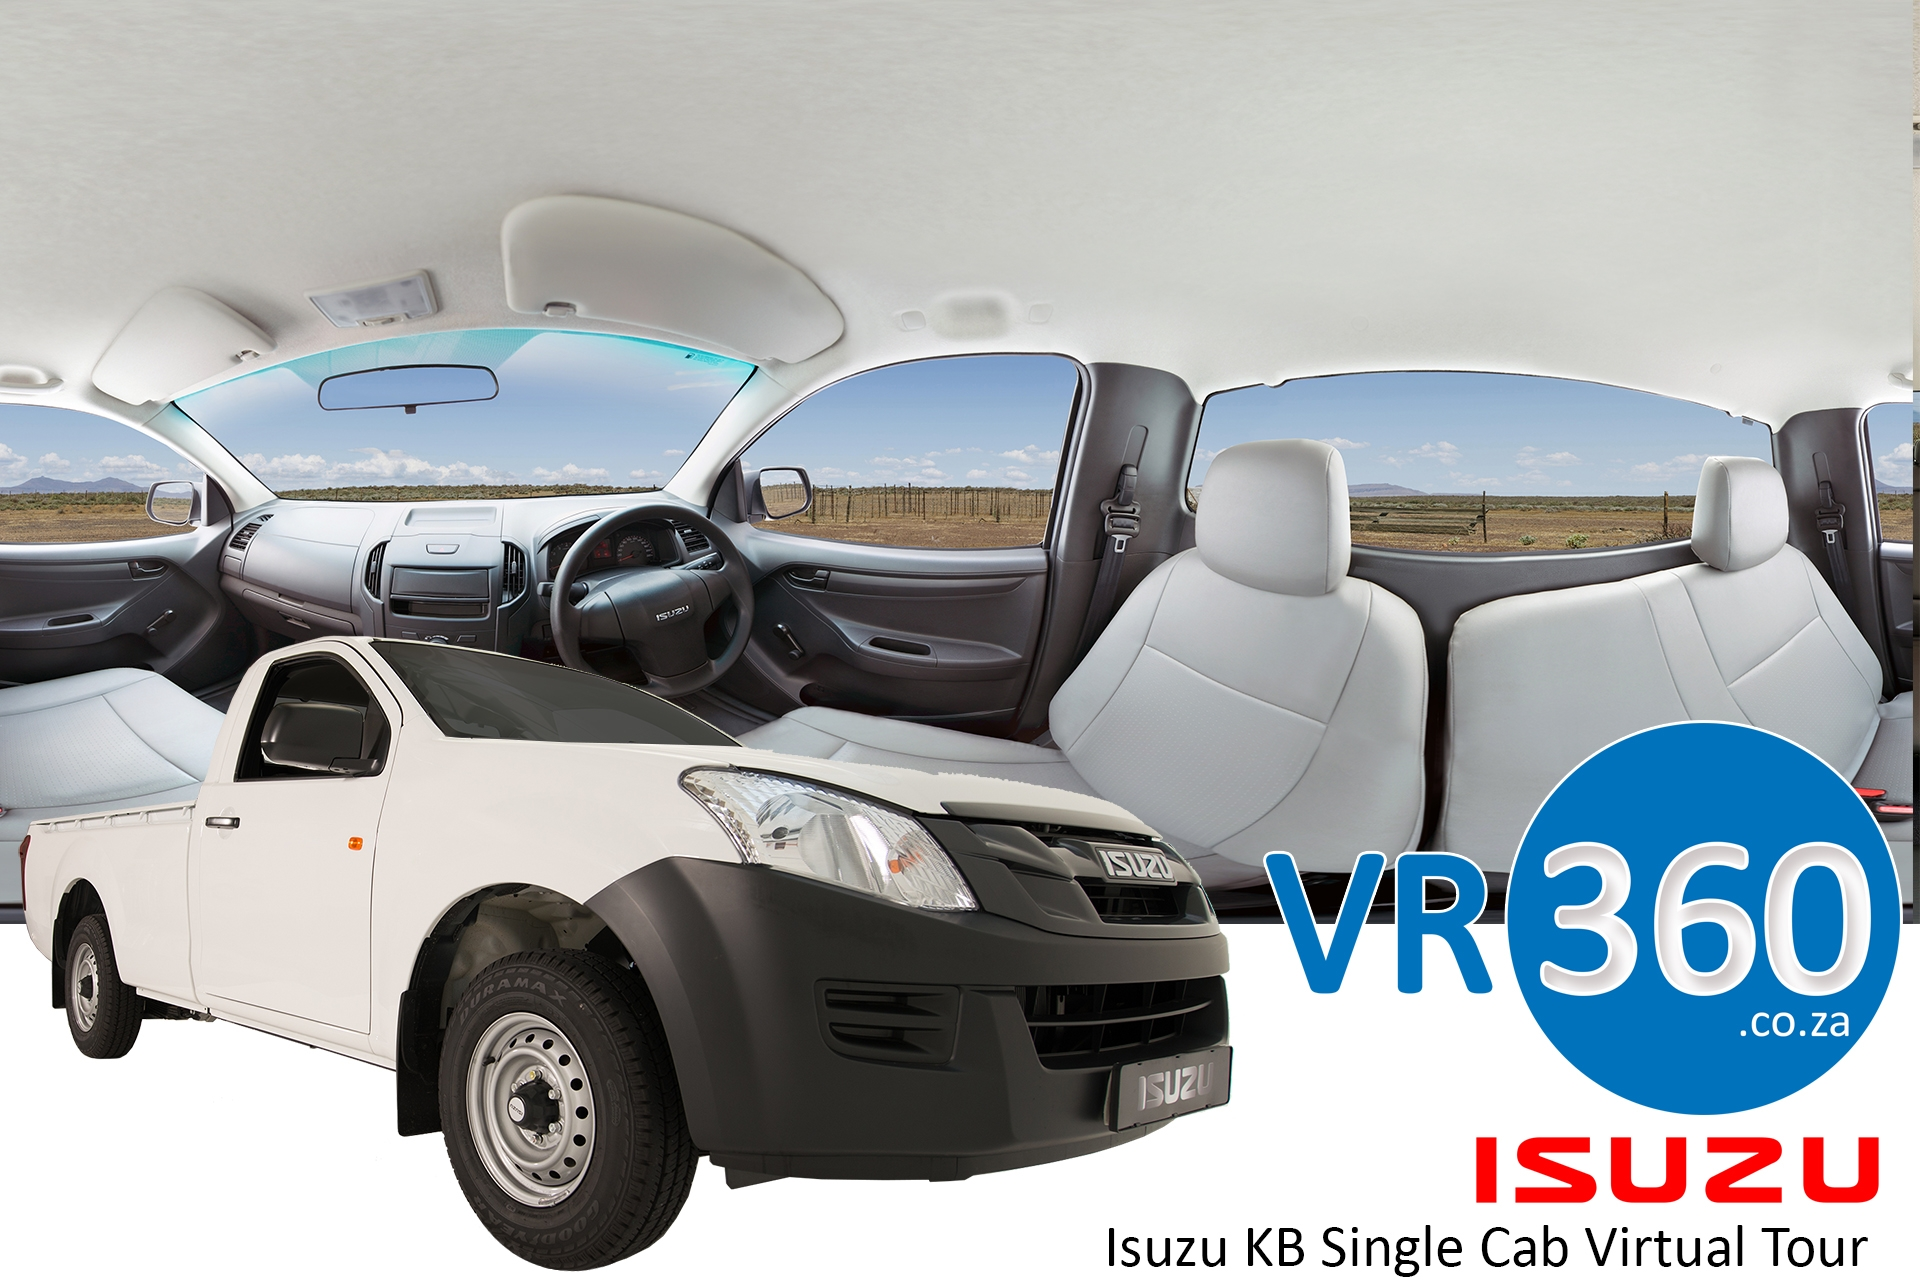 isuzu-kb-single-cab-virtual-tour